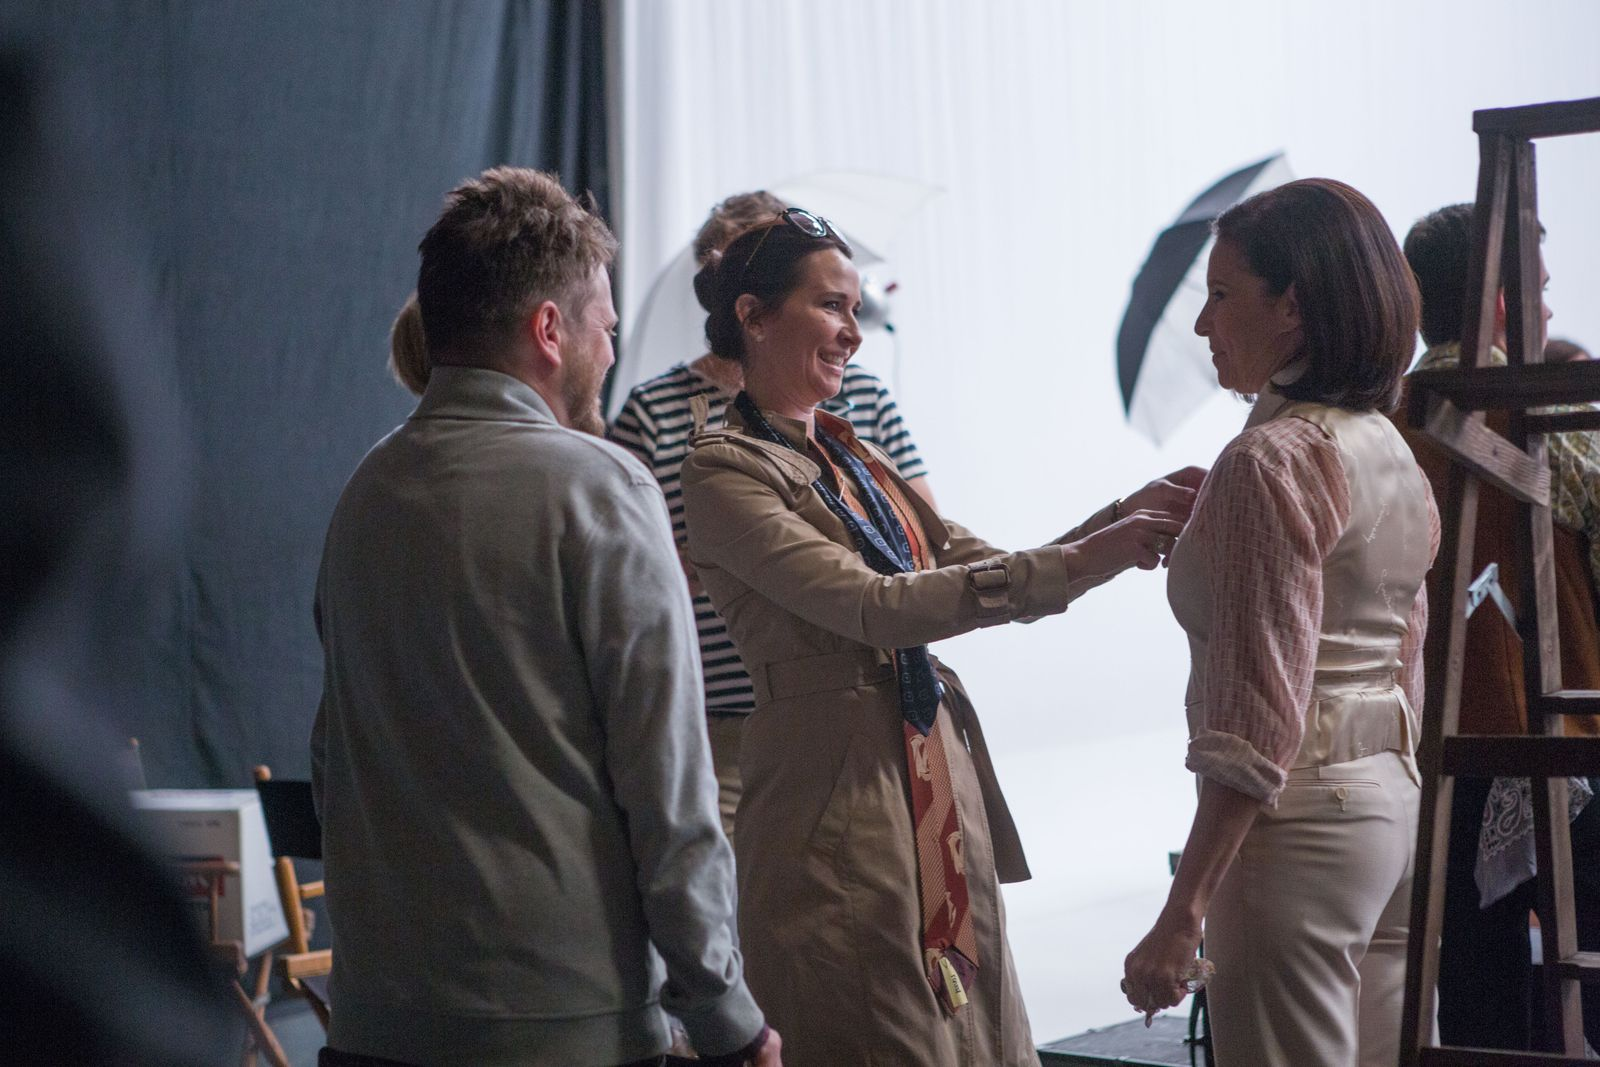 costume designer Janie Bryant on the set of Mad Men